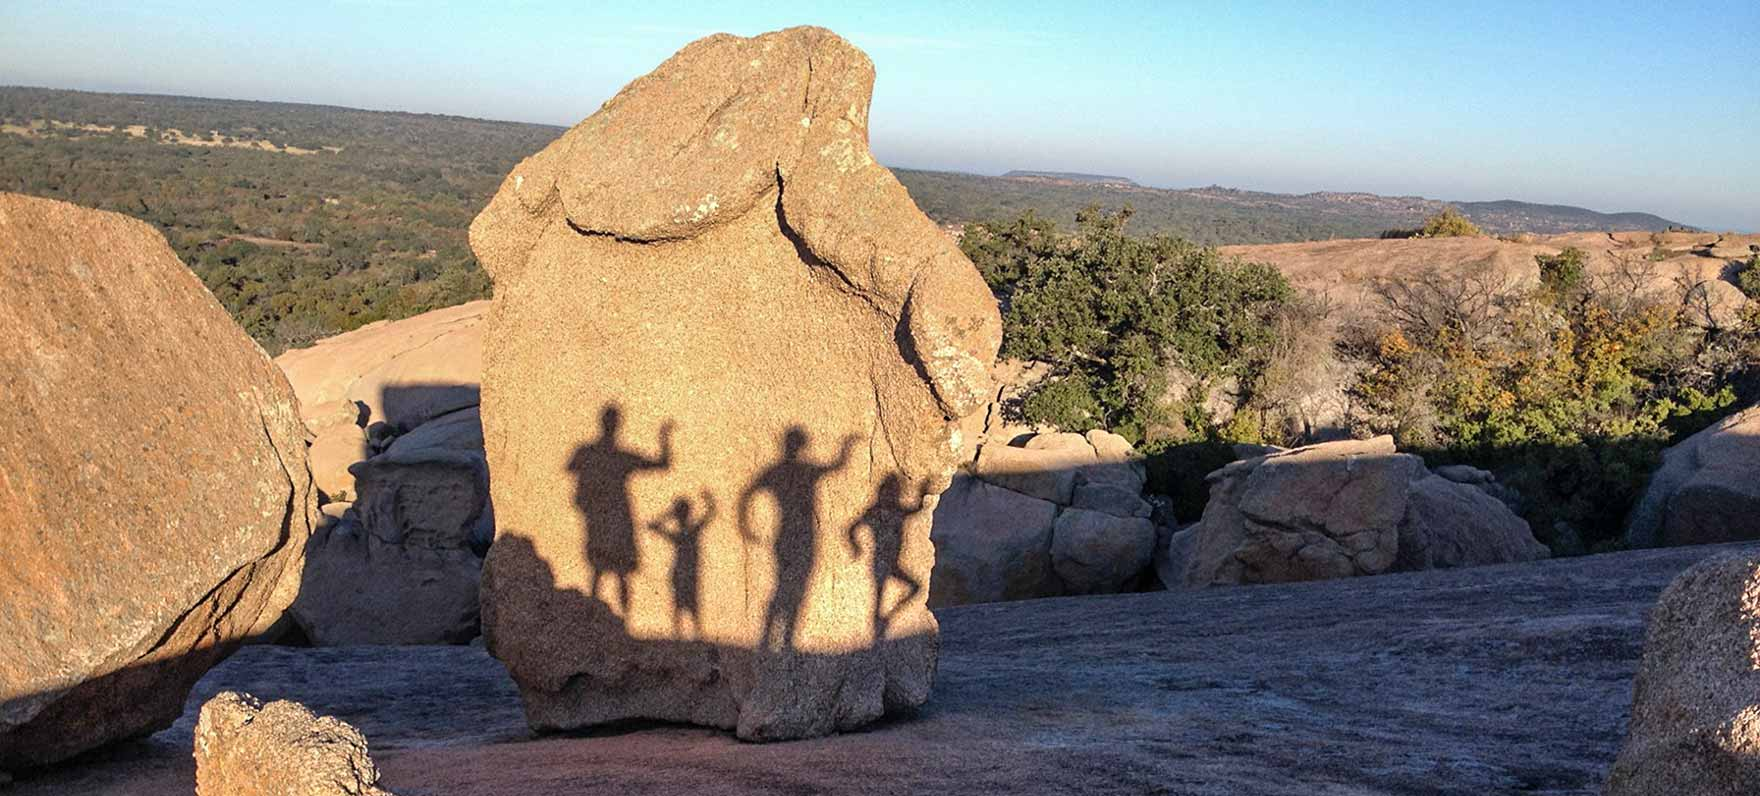 Take a hike - Enchanted Rock in Fredericksburg offers amazing scenery and over 11 miles hiking trails for a range of abilities.